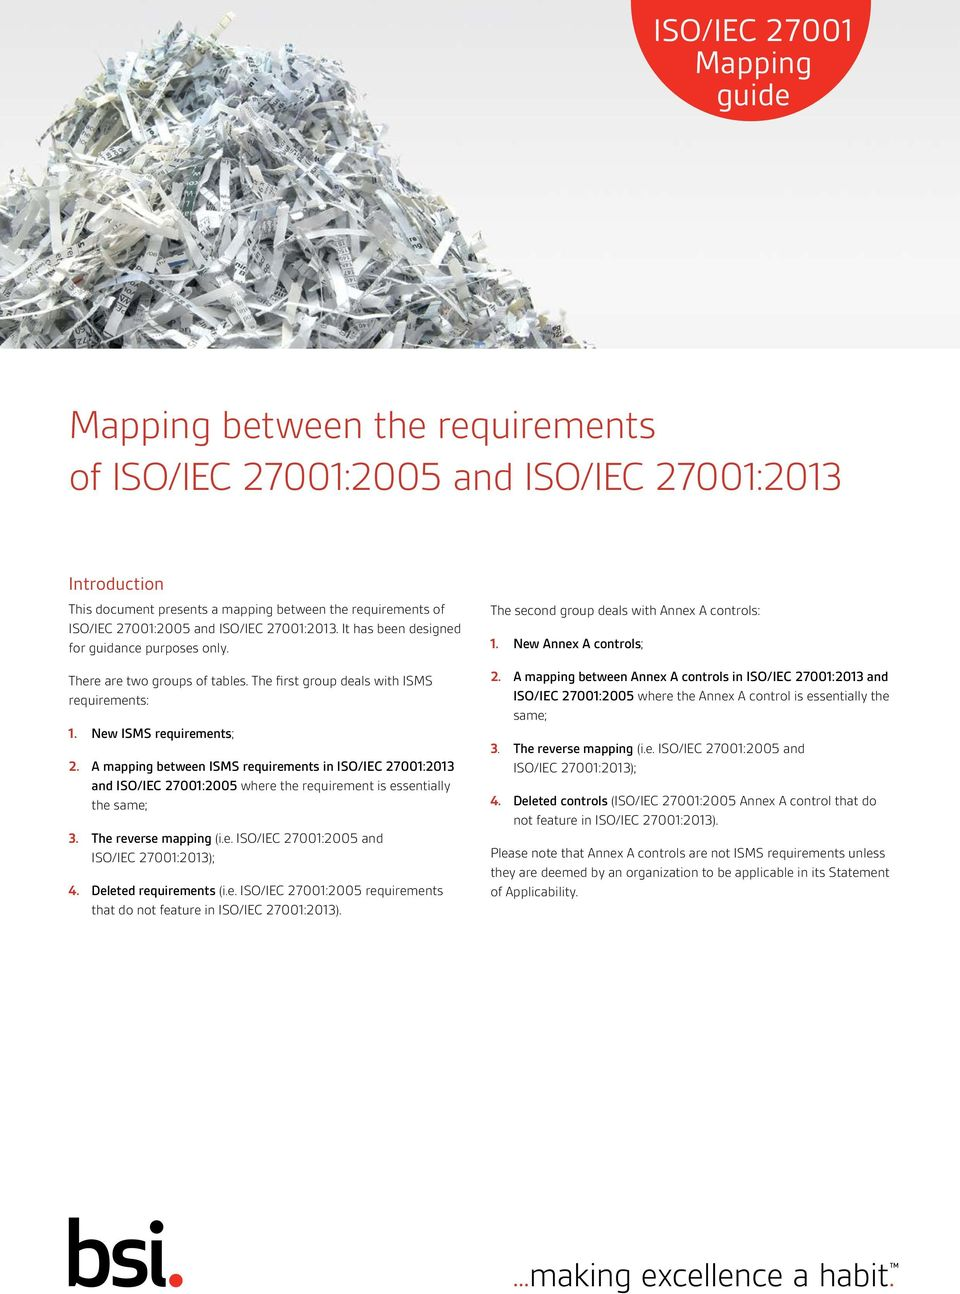 A mapping between ISMS requirements in ISO/IEC 27001:2013 and ISO/IEC 27001:2005 where the requirement is essentially the same; 3. The reverse mapping (i.e. ISO/IEC 27001:2005 and ISO/IEC 27001:2013); 4.